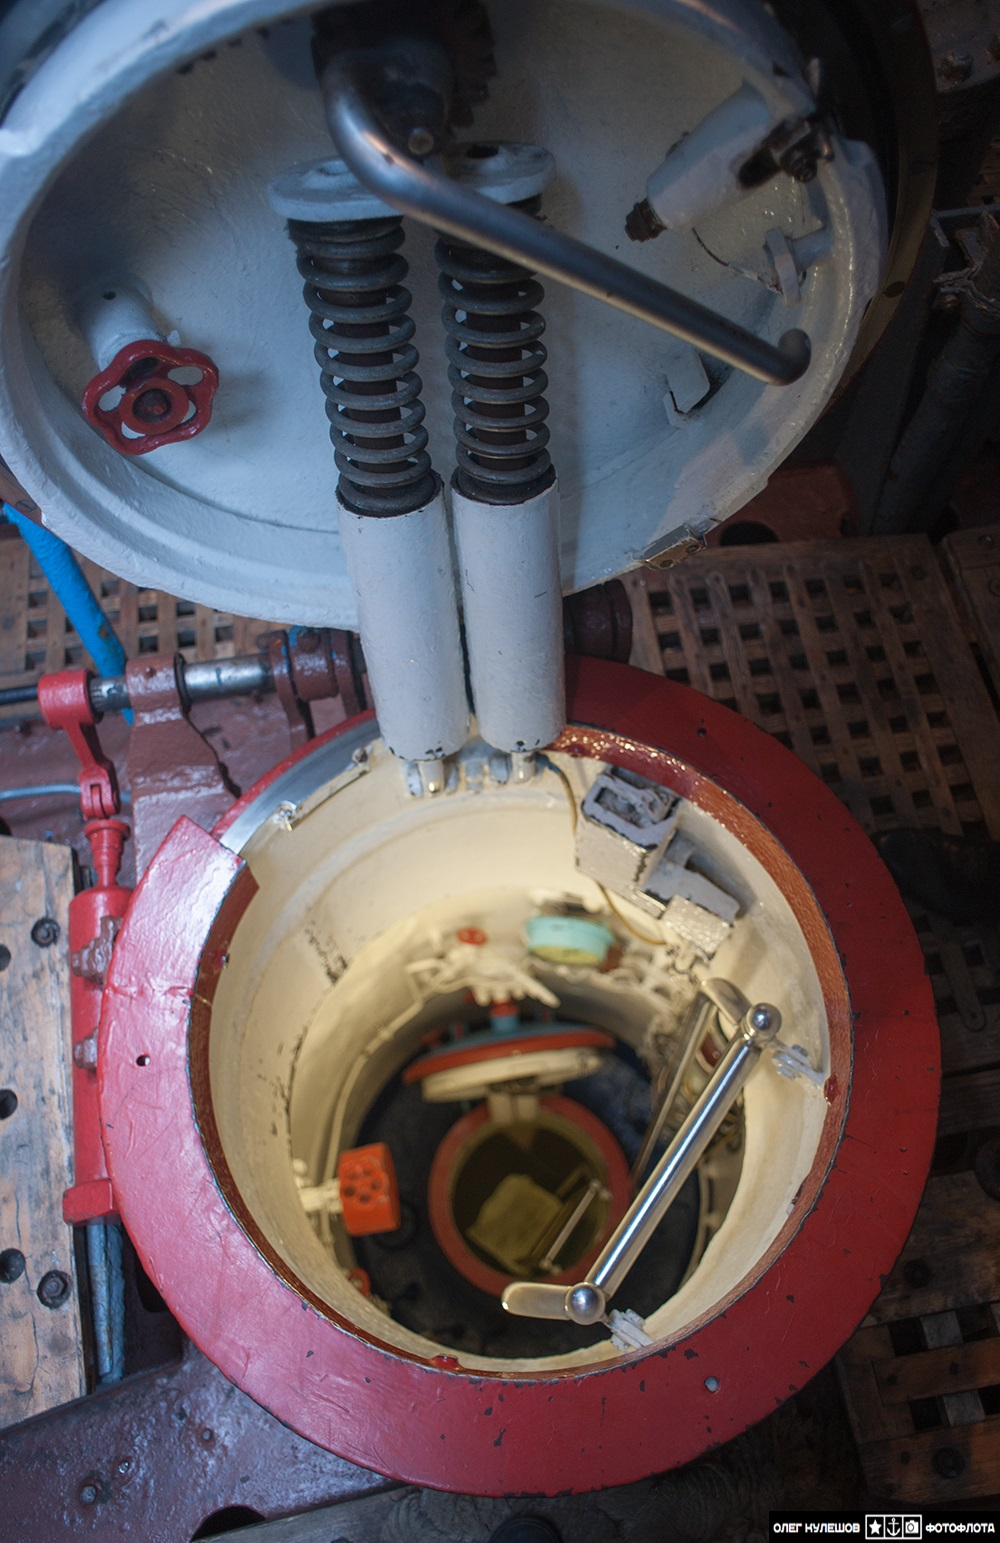 Inside a giant: Russian typhoon-class submarine TK-17 Arkhangelsk - 10